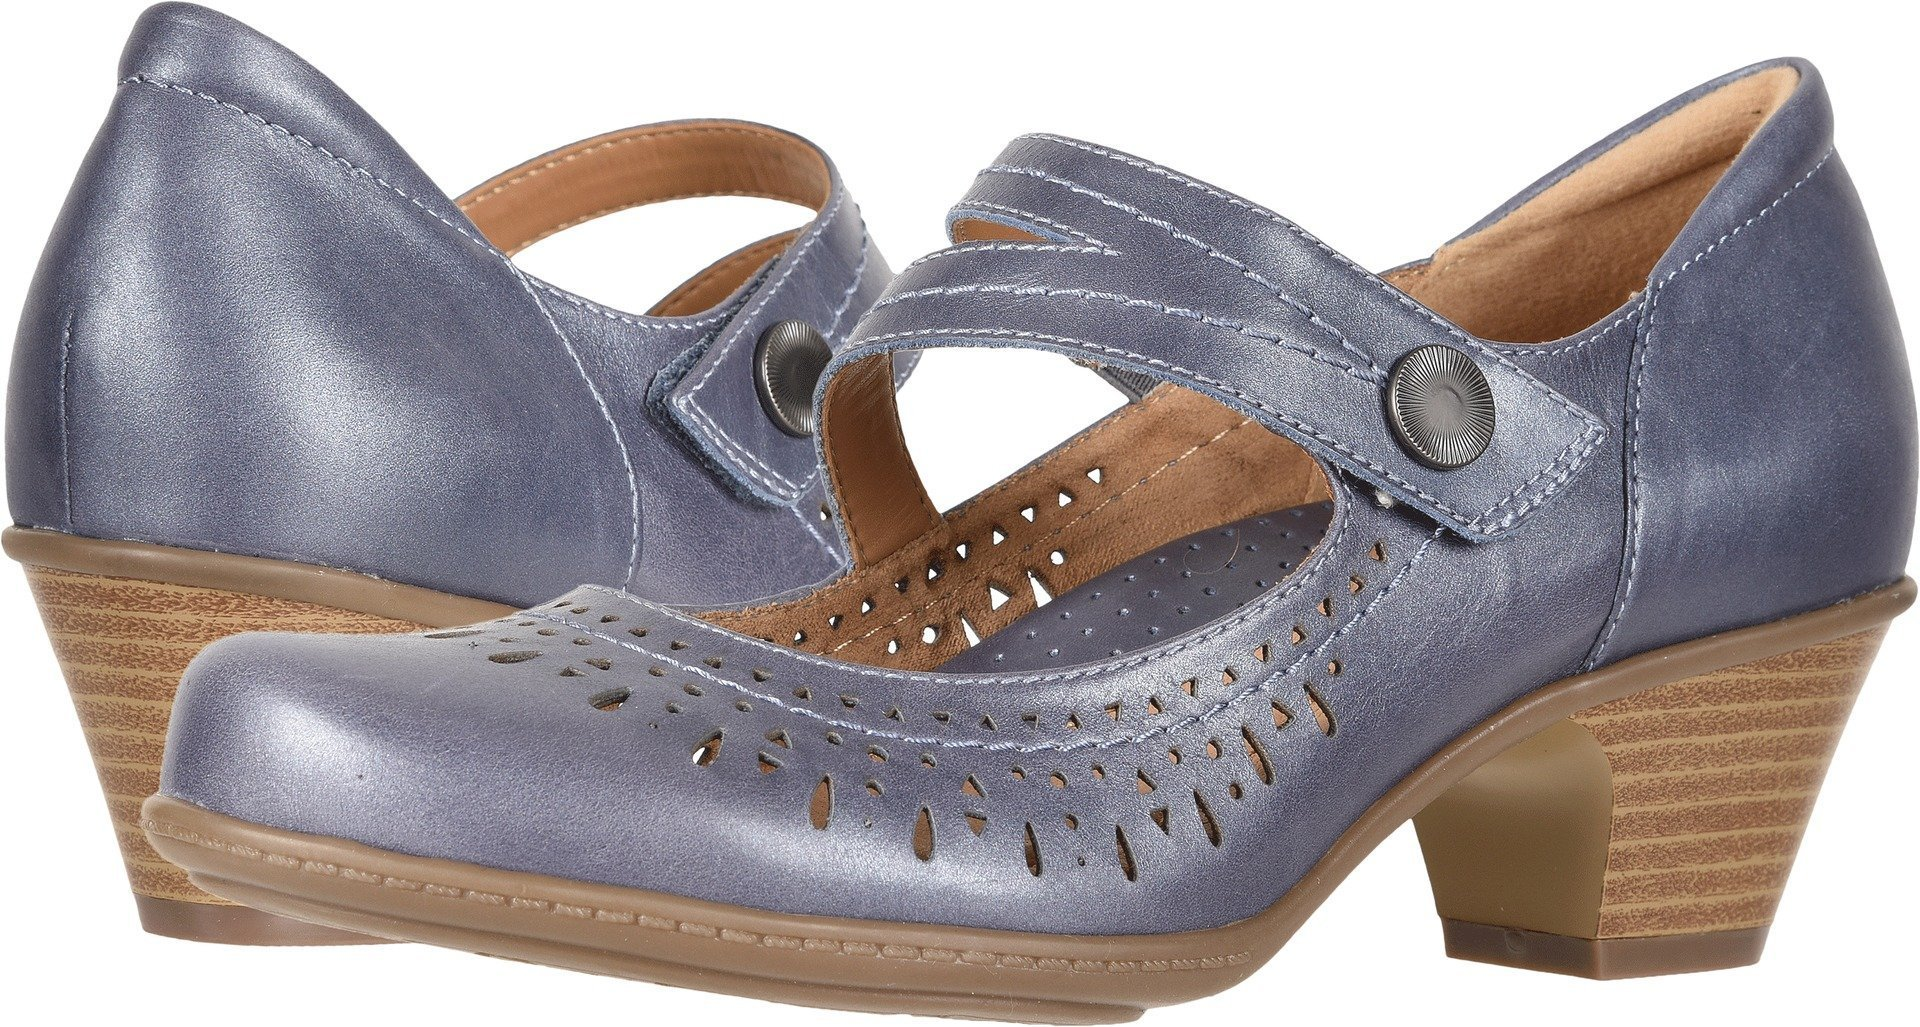 Earth Women's Dione Navy Pearlized Metallic Leather 8 B US